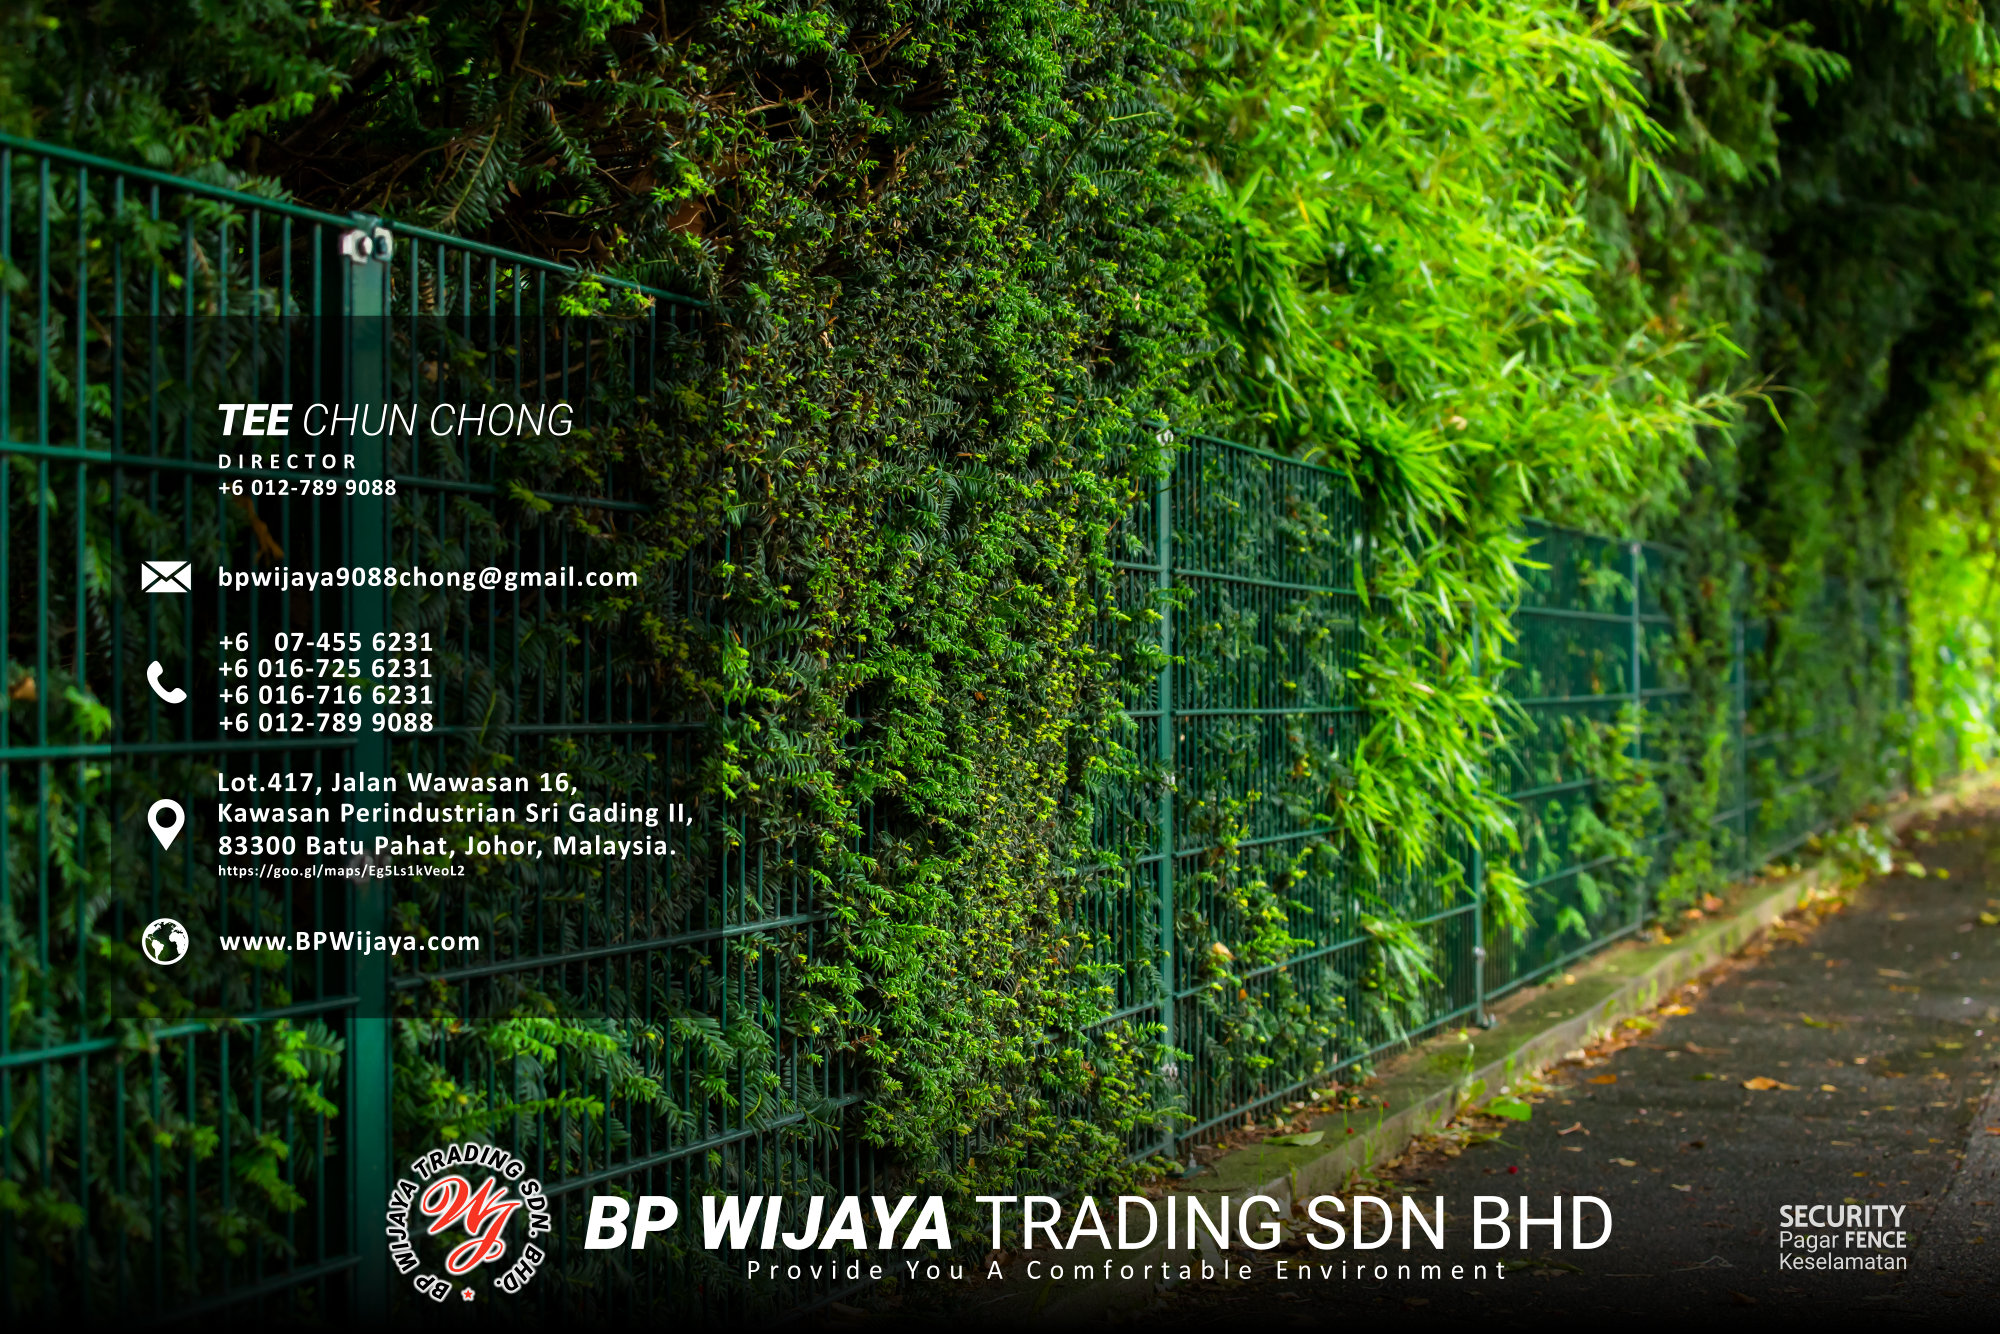 Kuala Lumpur Security Fence Supply we are manufacturer of security fence BP Wijaya Trading Sdn Bhd Safety Fence Building Materials for Housing Construction factory fence house beauty fence A03-012